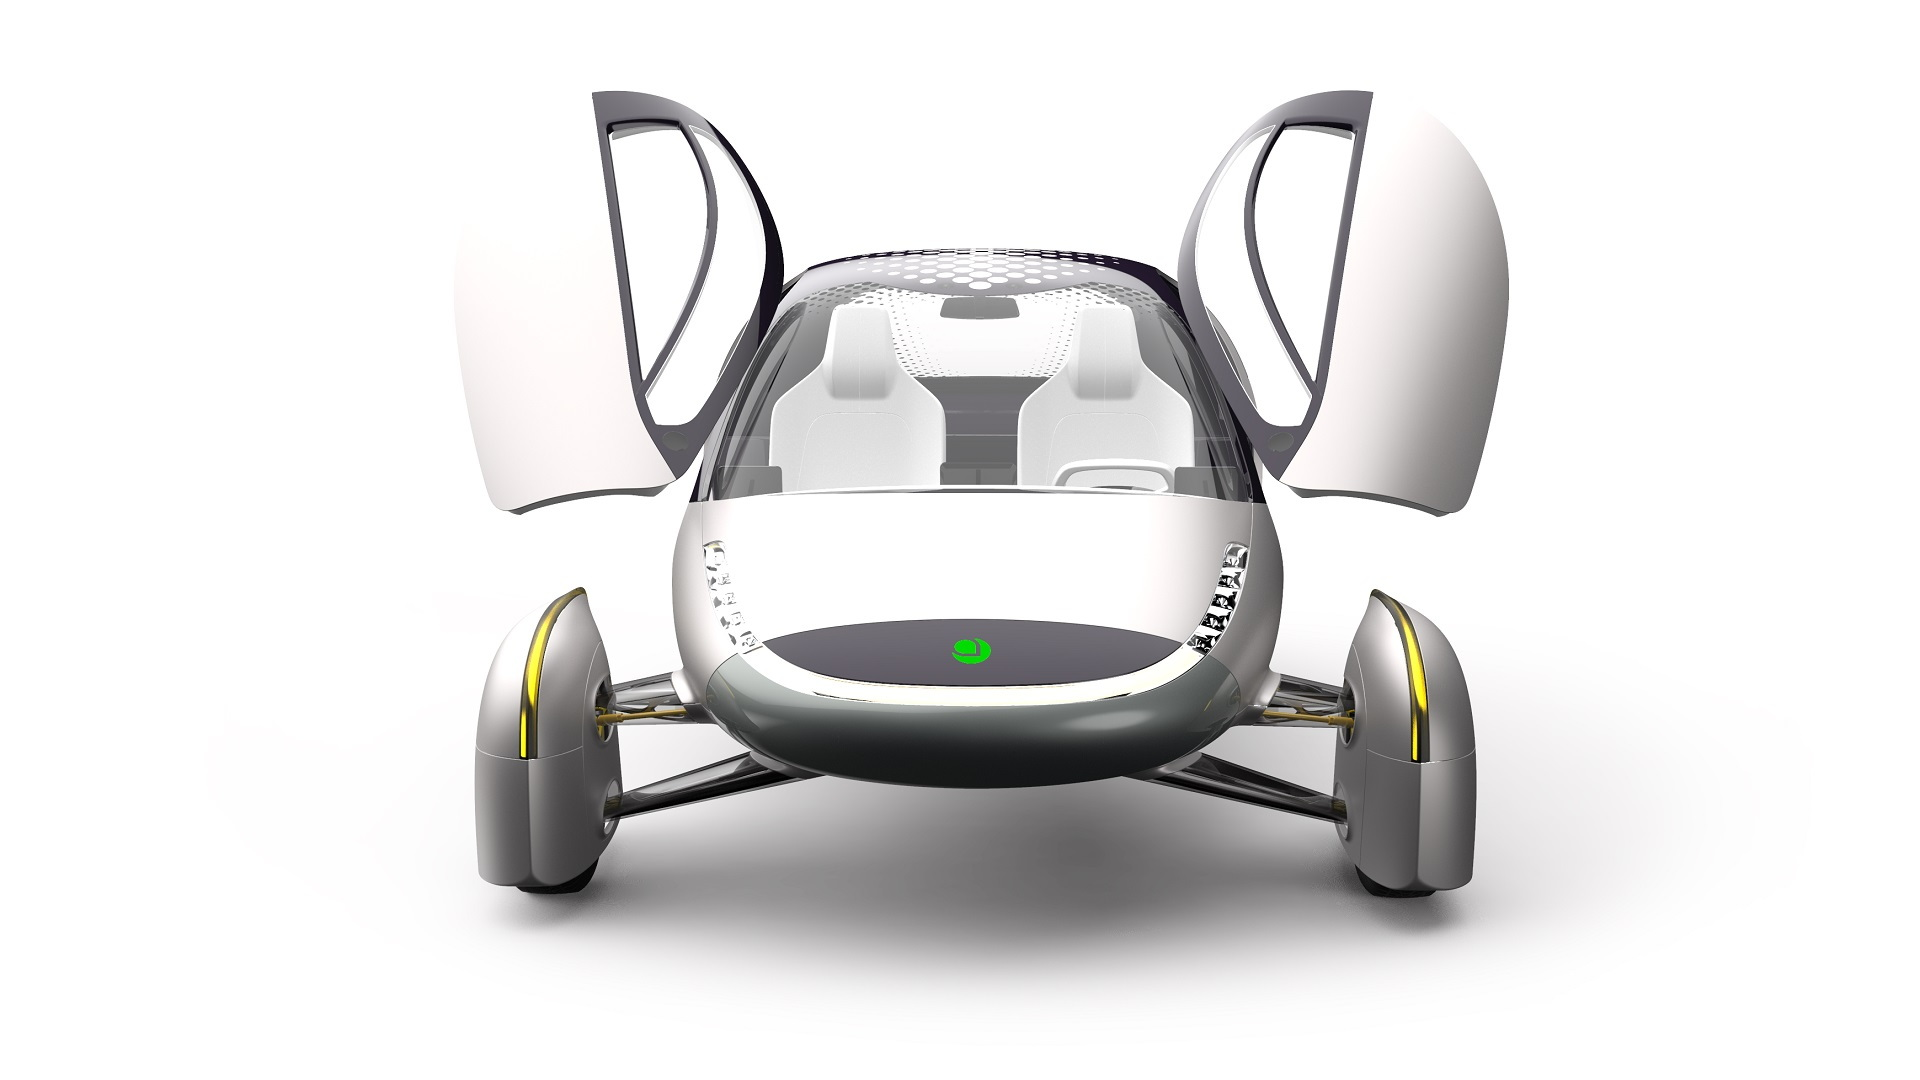 Design for new Aptera electric car, Aug 2019